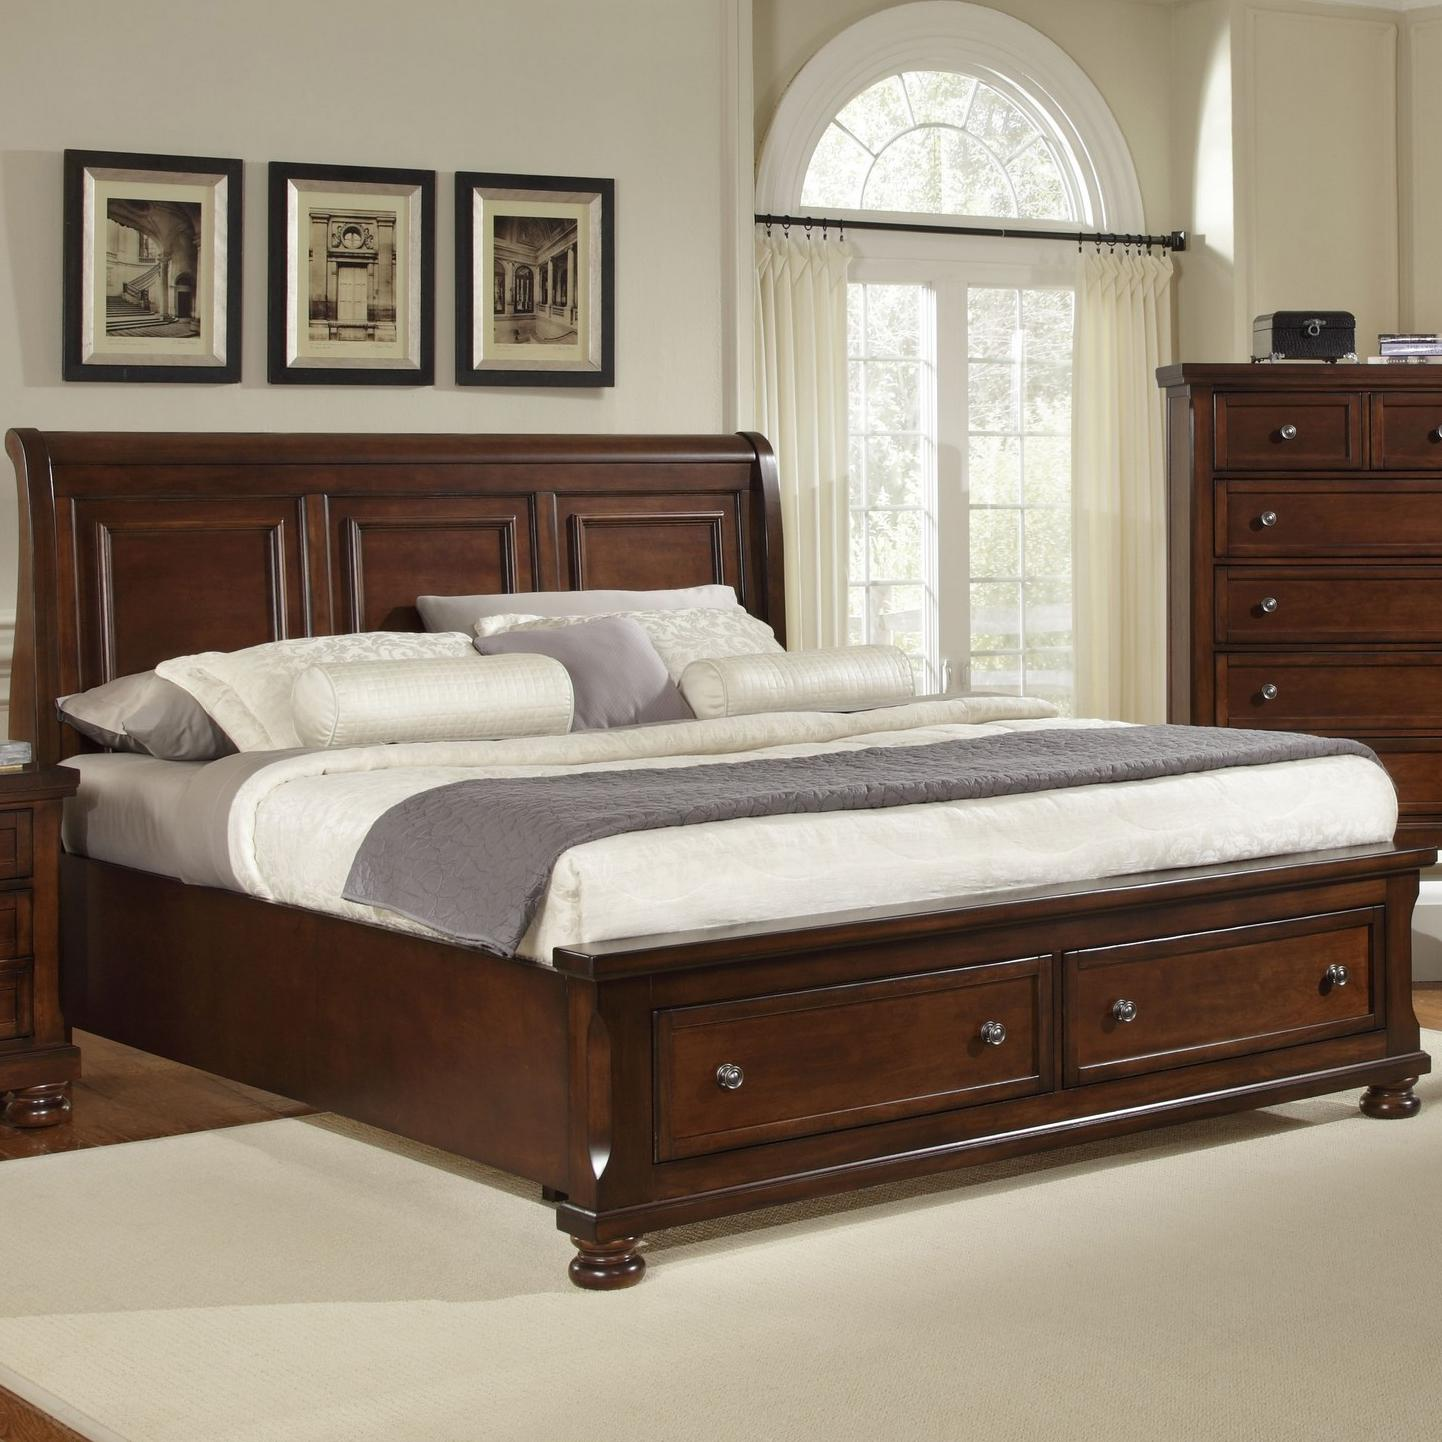 Bedding Storage Reflections Queen Storage Bed With Sleigh Headboard By Vaughan Bassett At Belfort Furniture